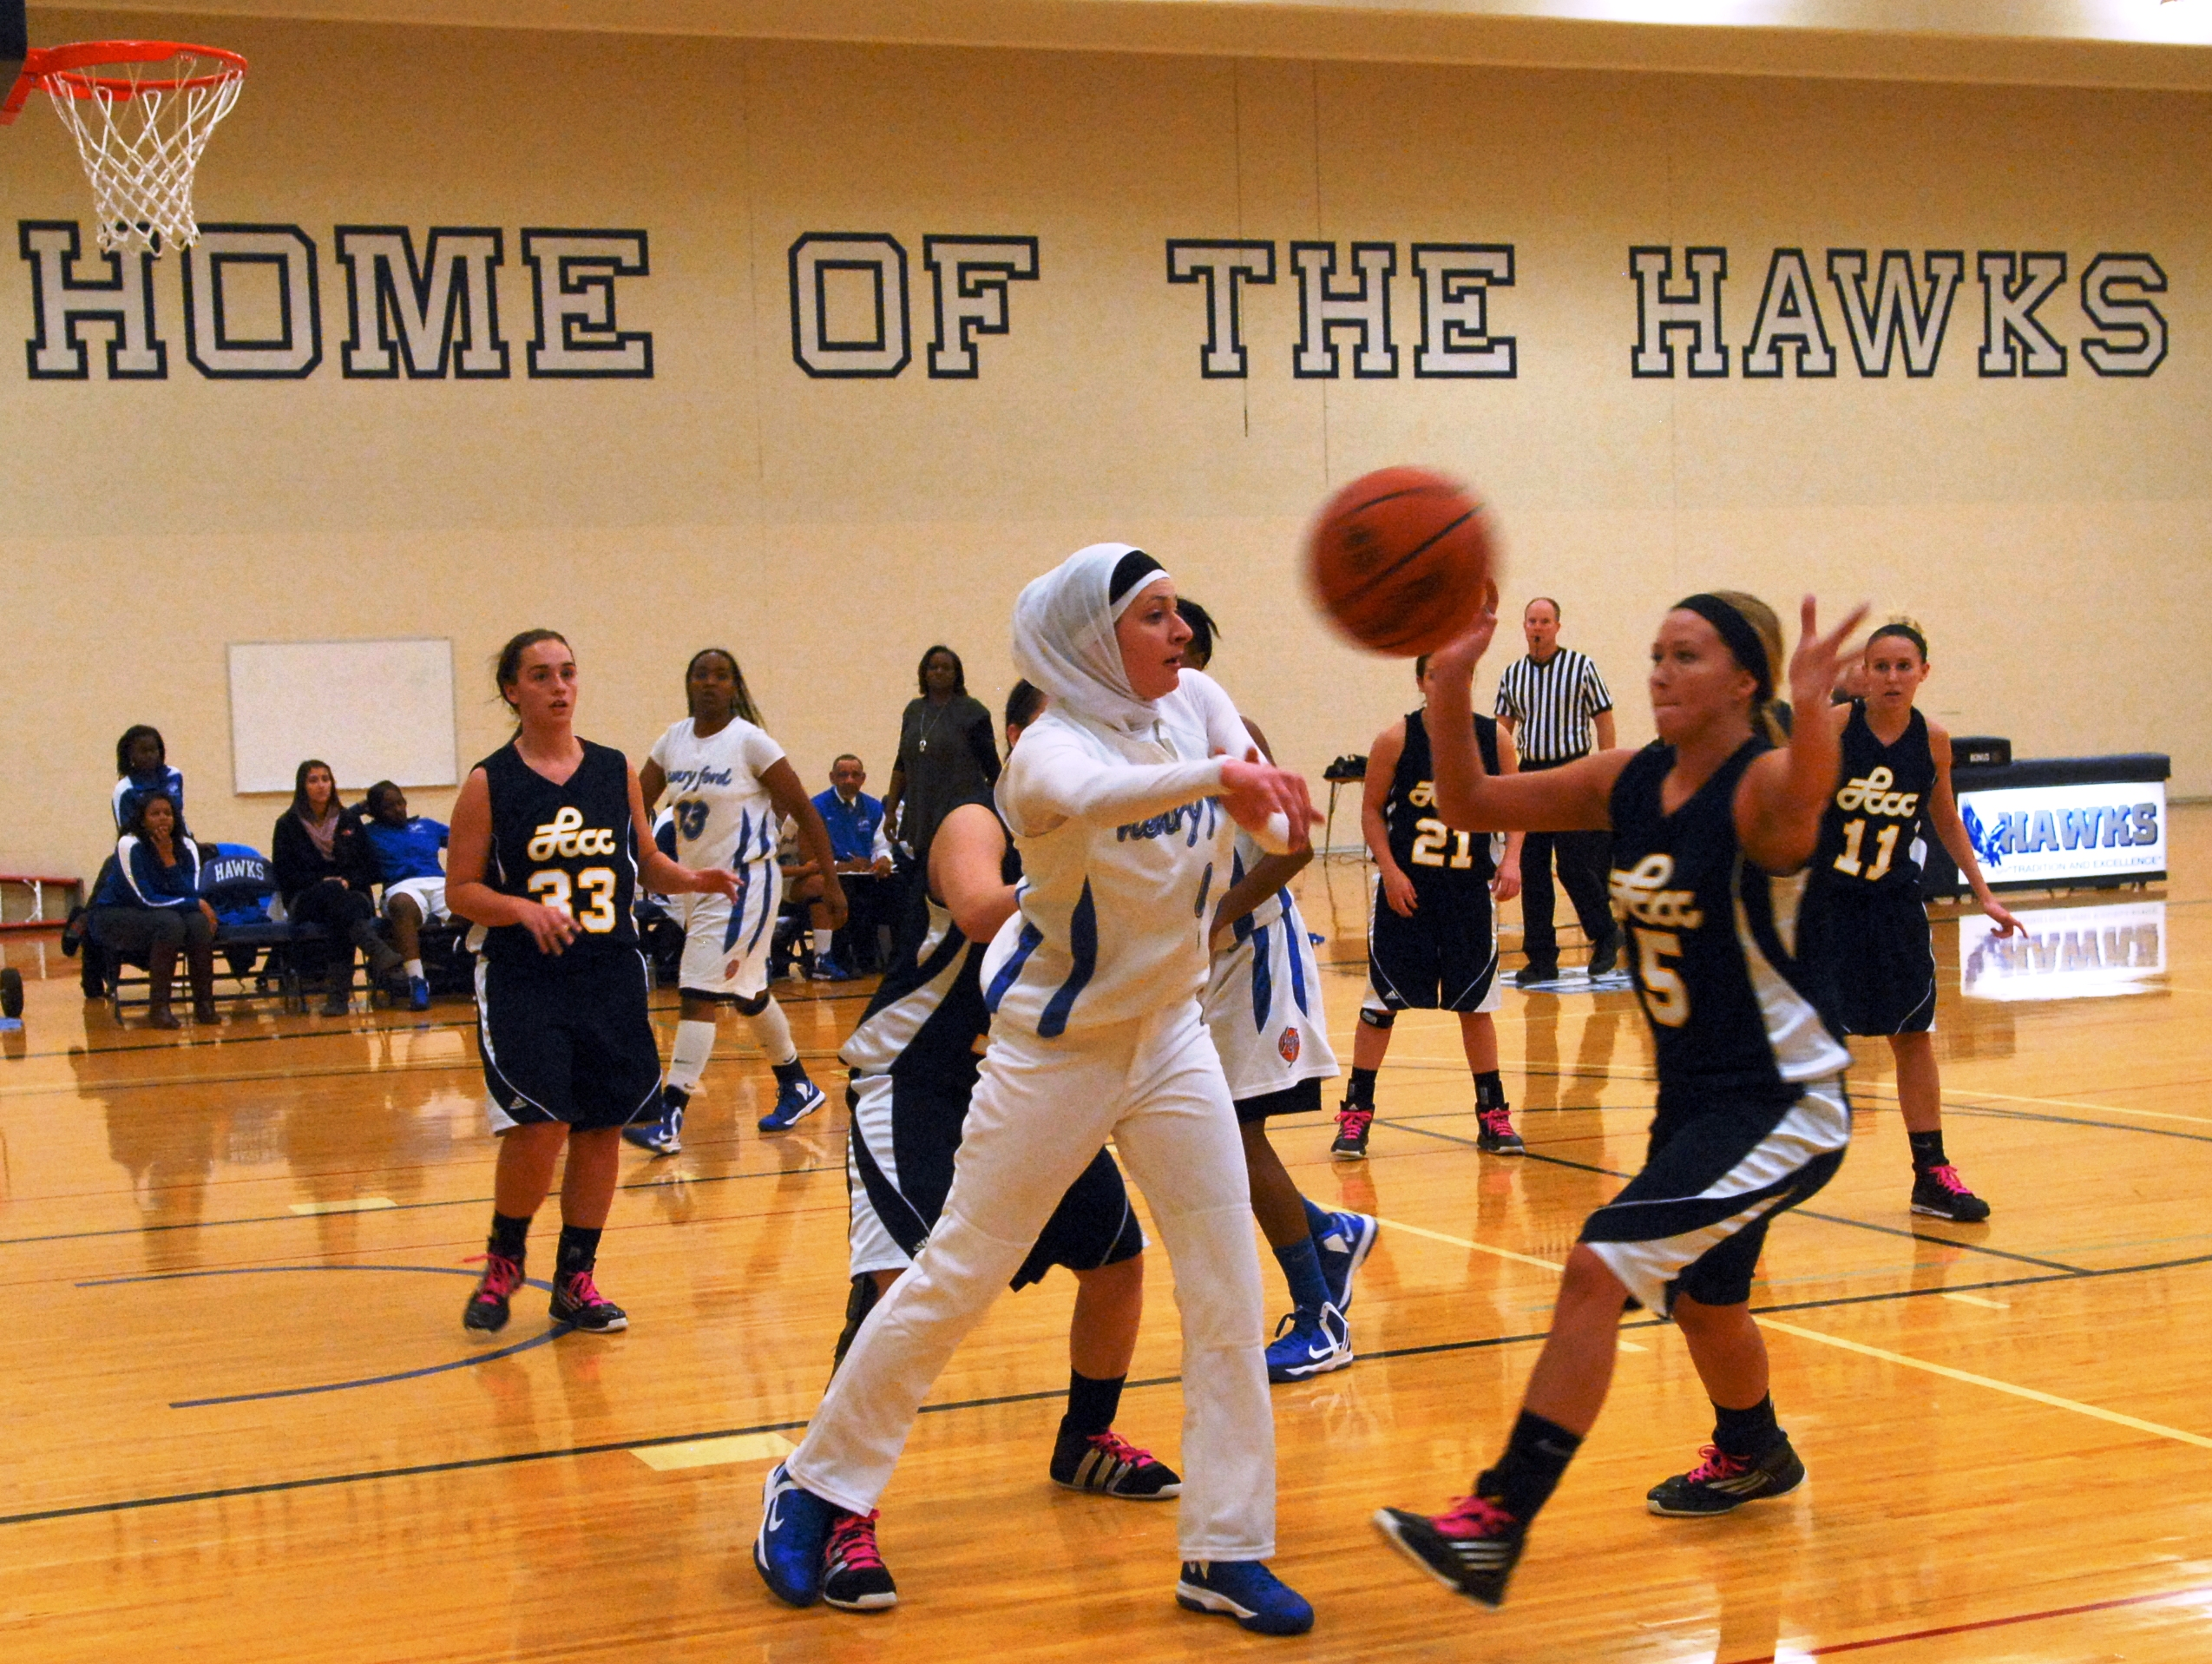 Lady Hawks in action